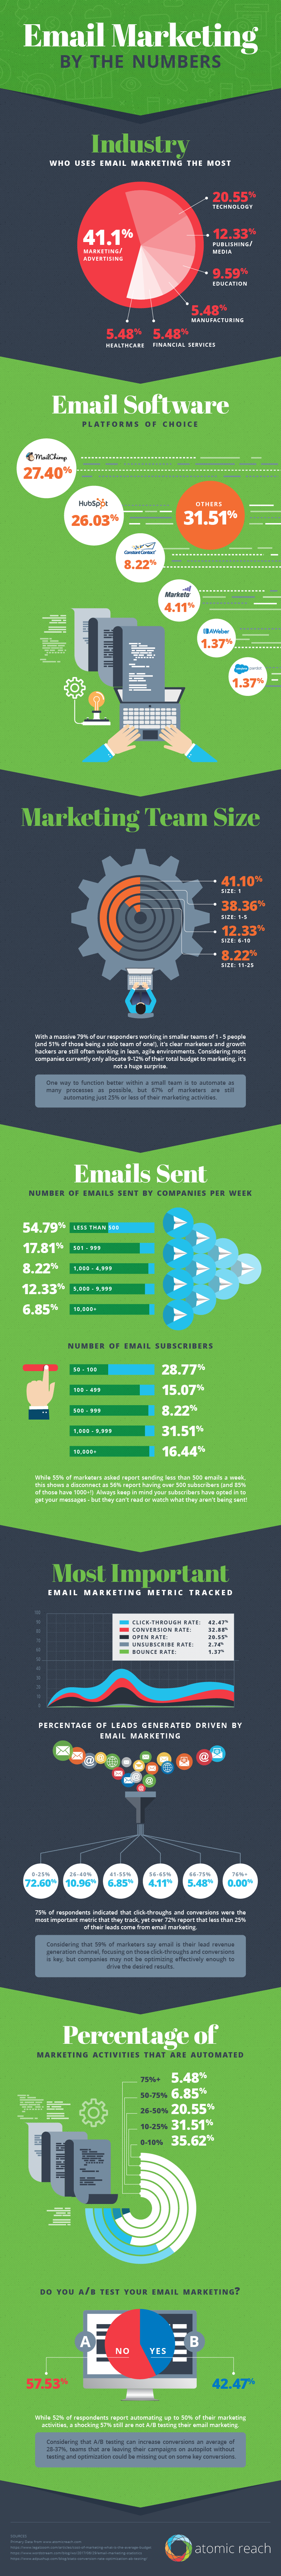 Email Marketing Survey - Infographic